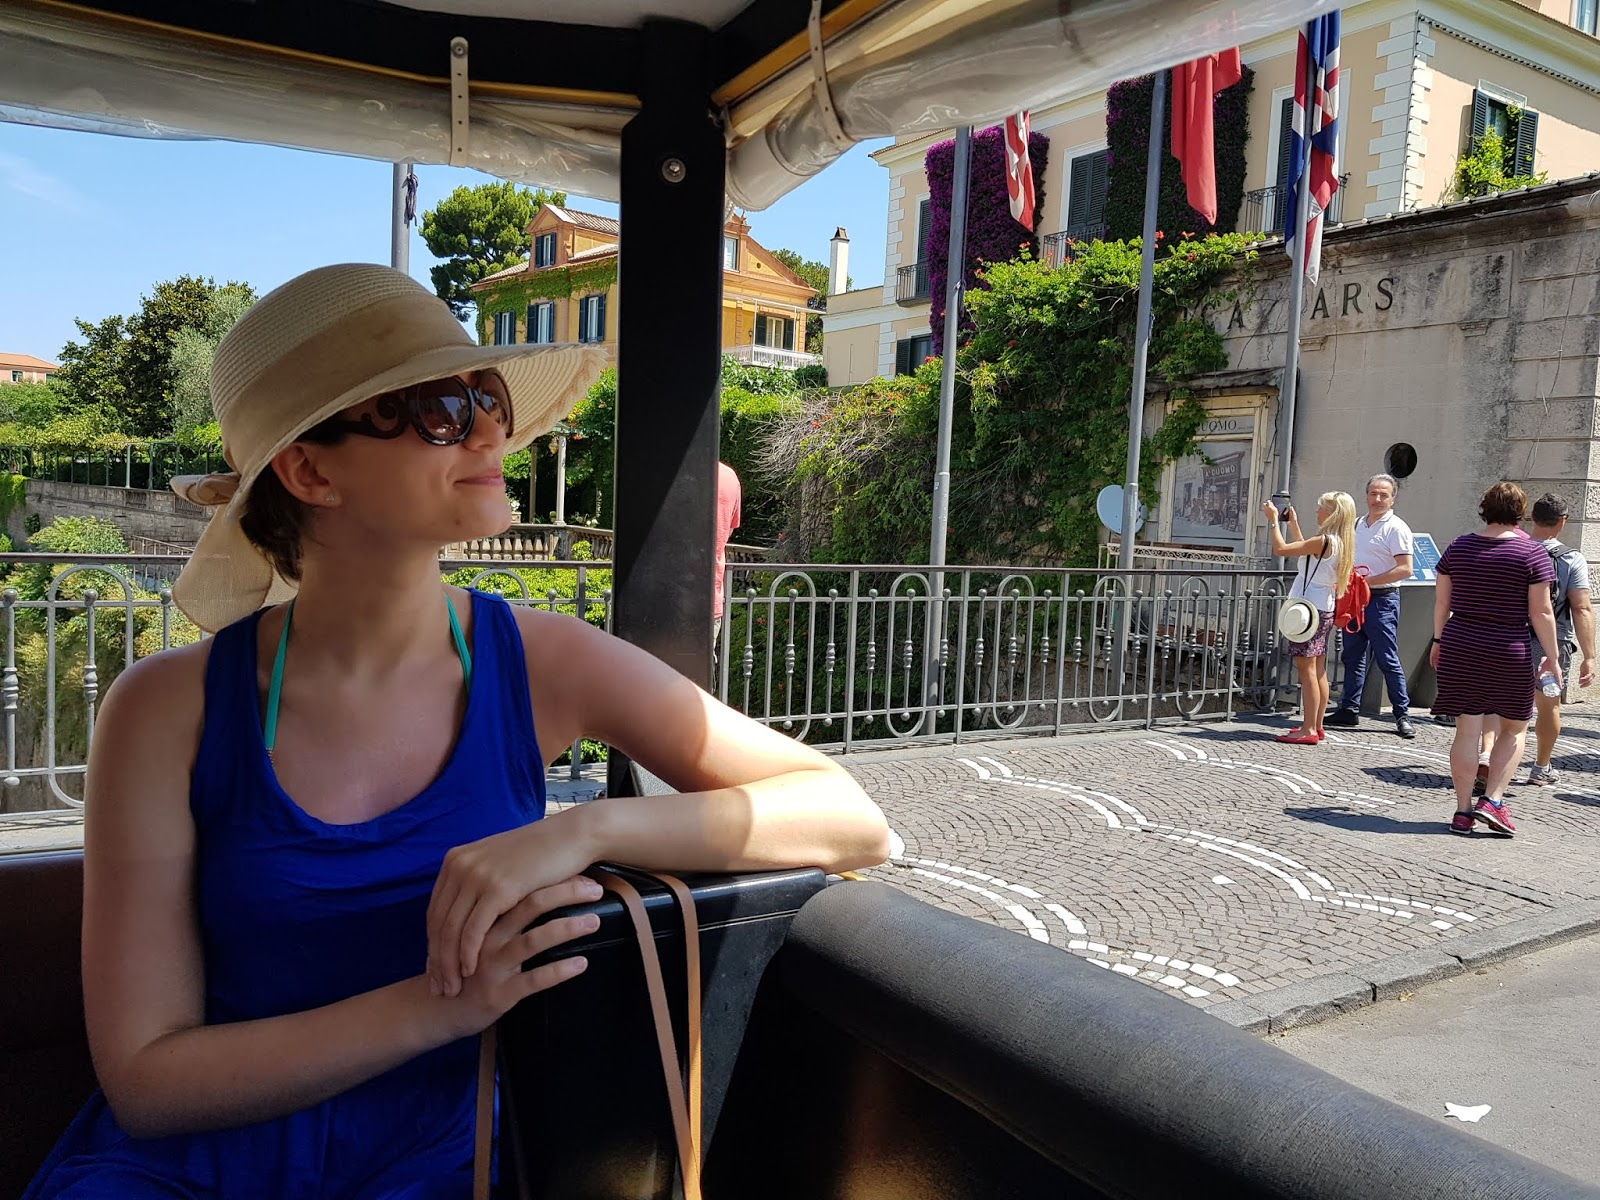 sorrento italy train ride holiday sightseeing visit